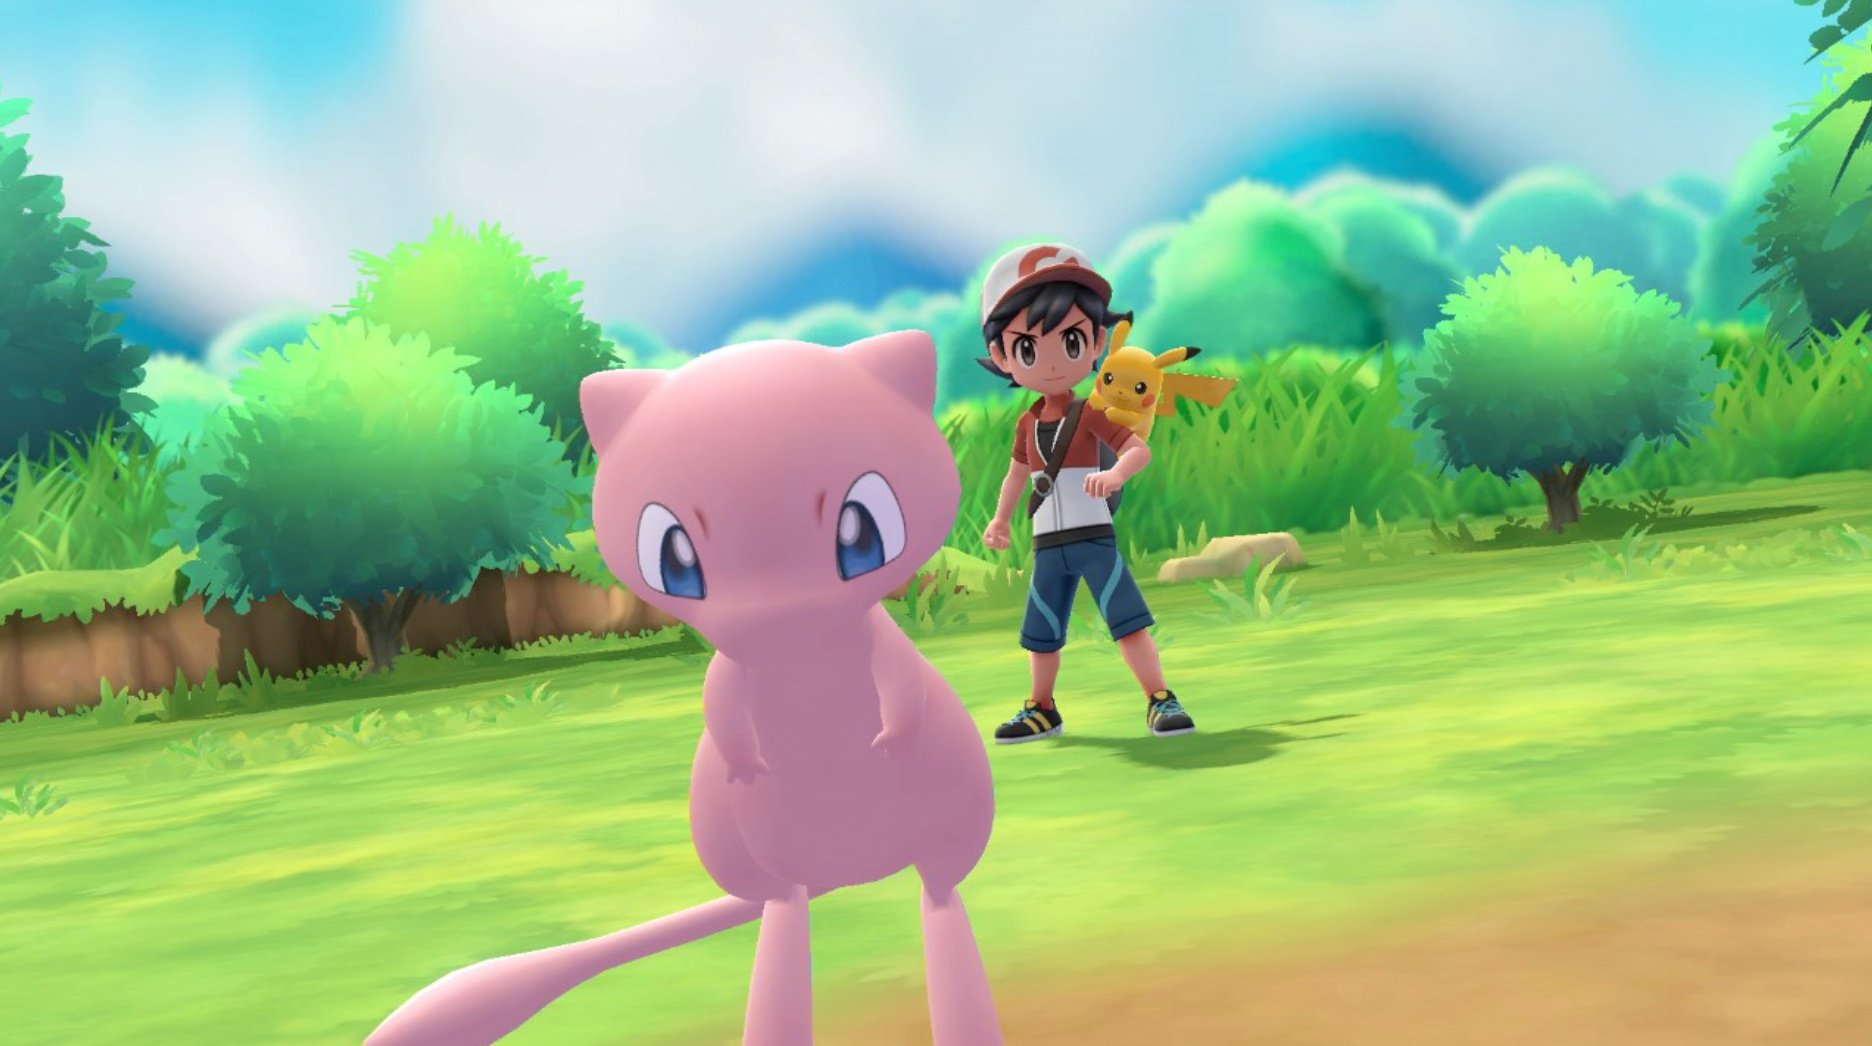 How To Unlock Mew In Pokémon: Let's Go On Nintendo Switch